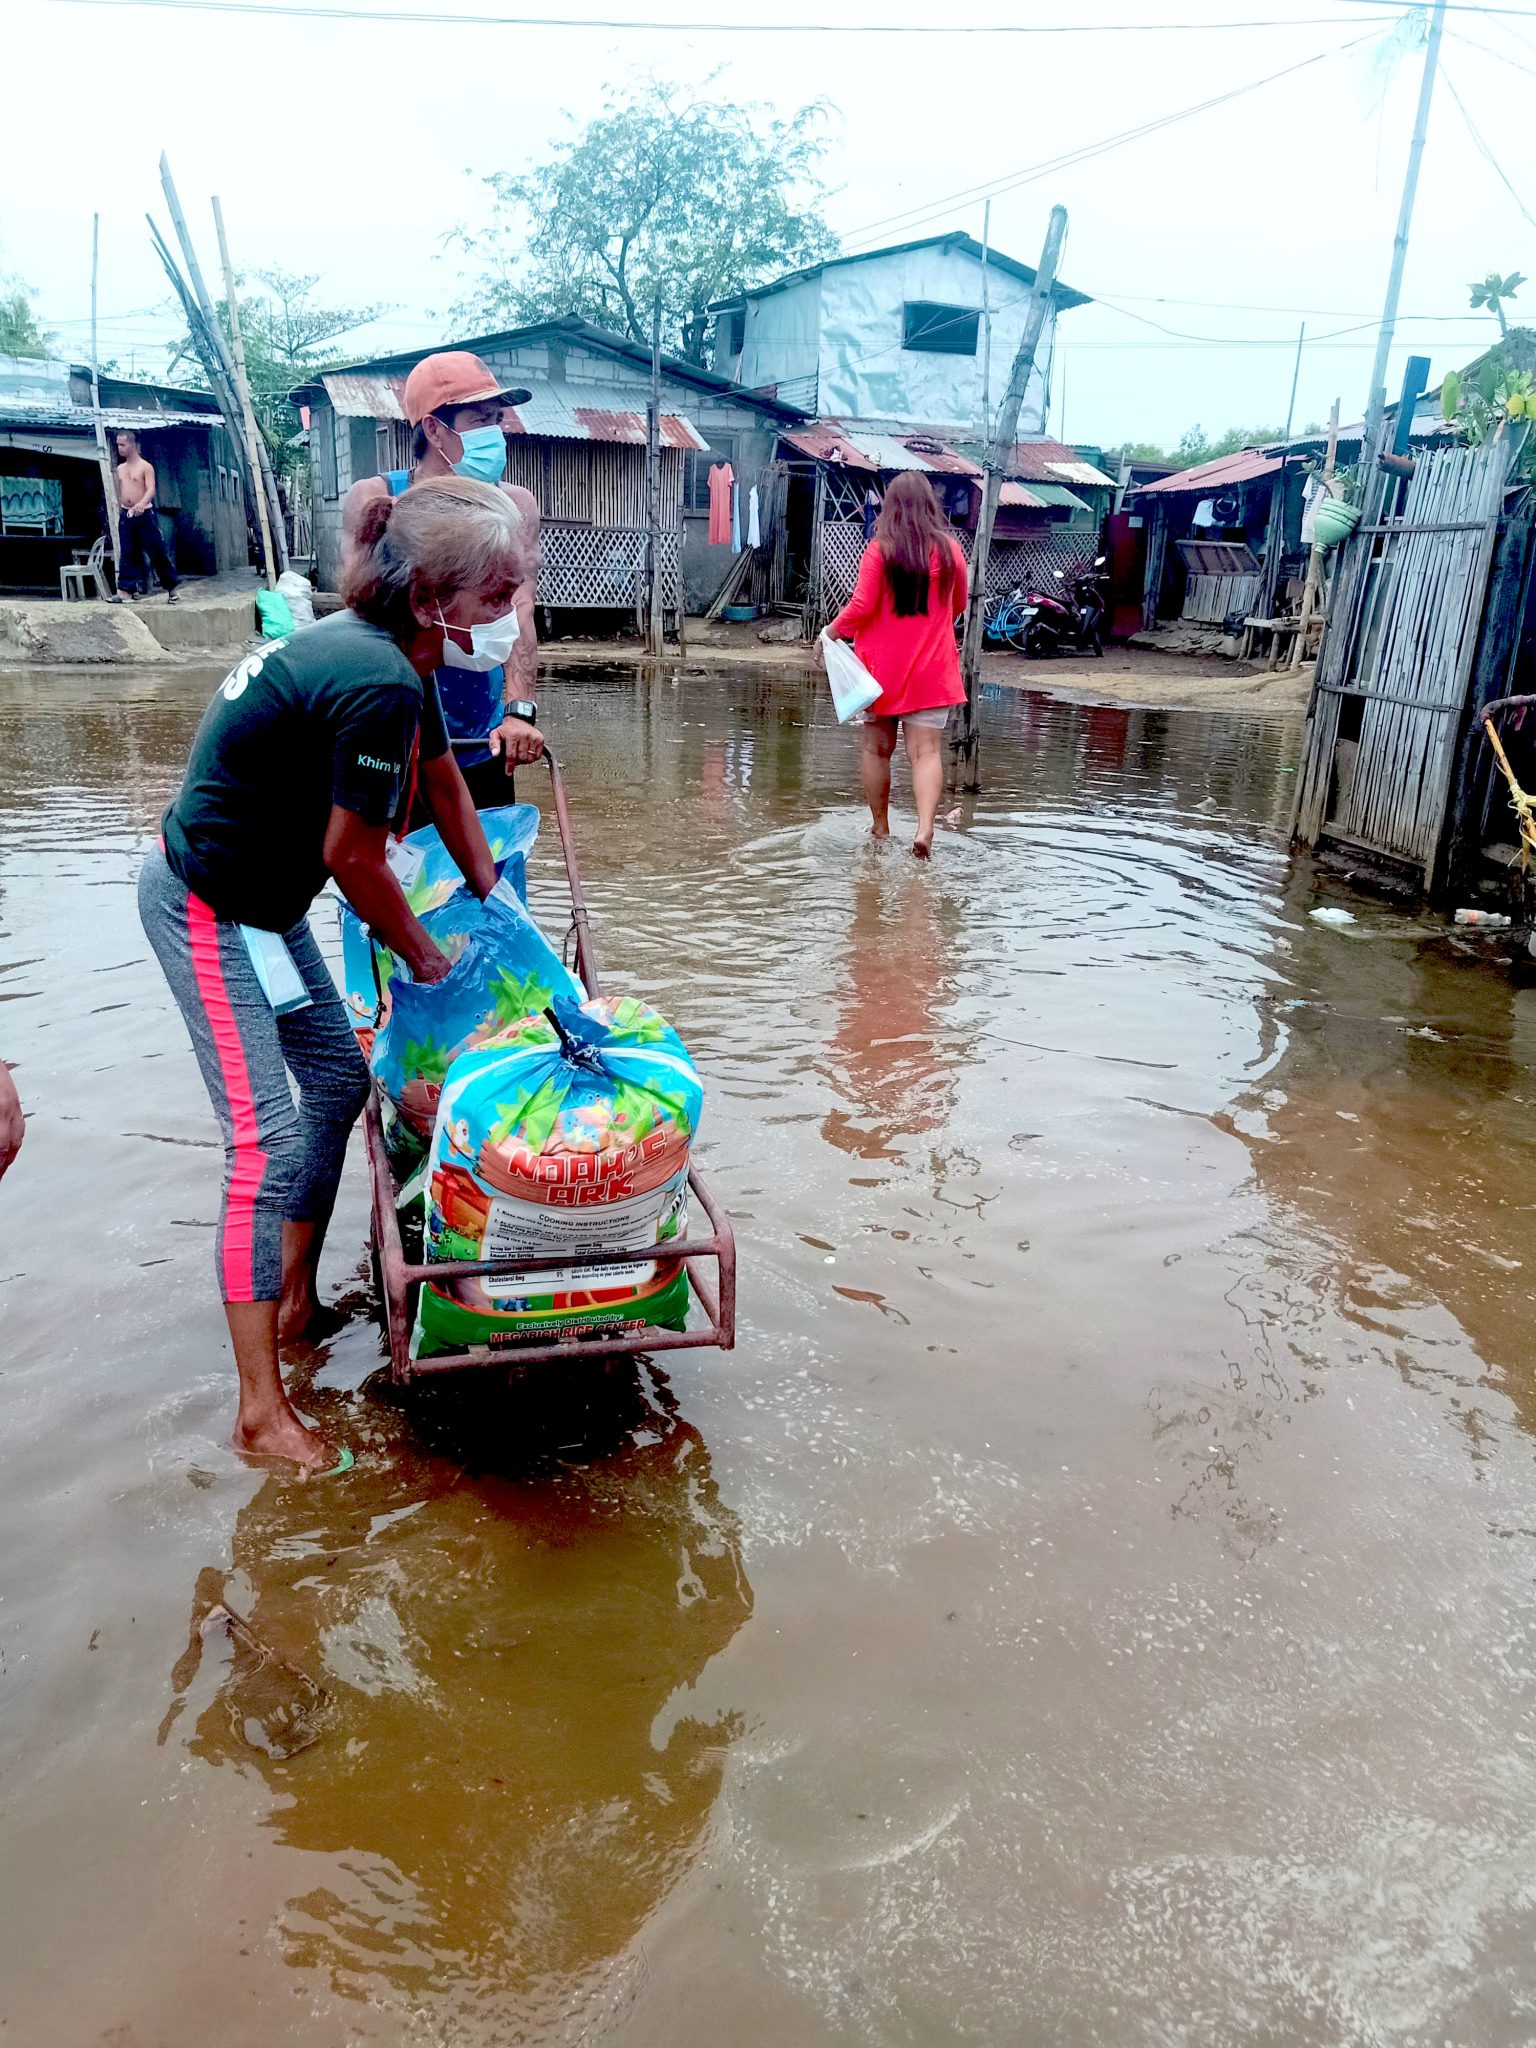 Distributing Food Through Flood Water in the Community